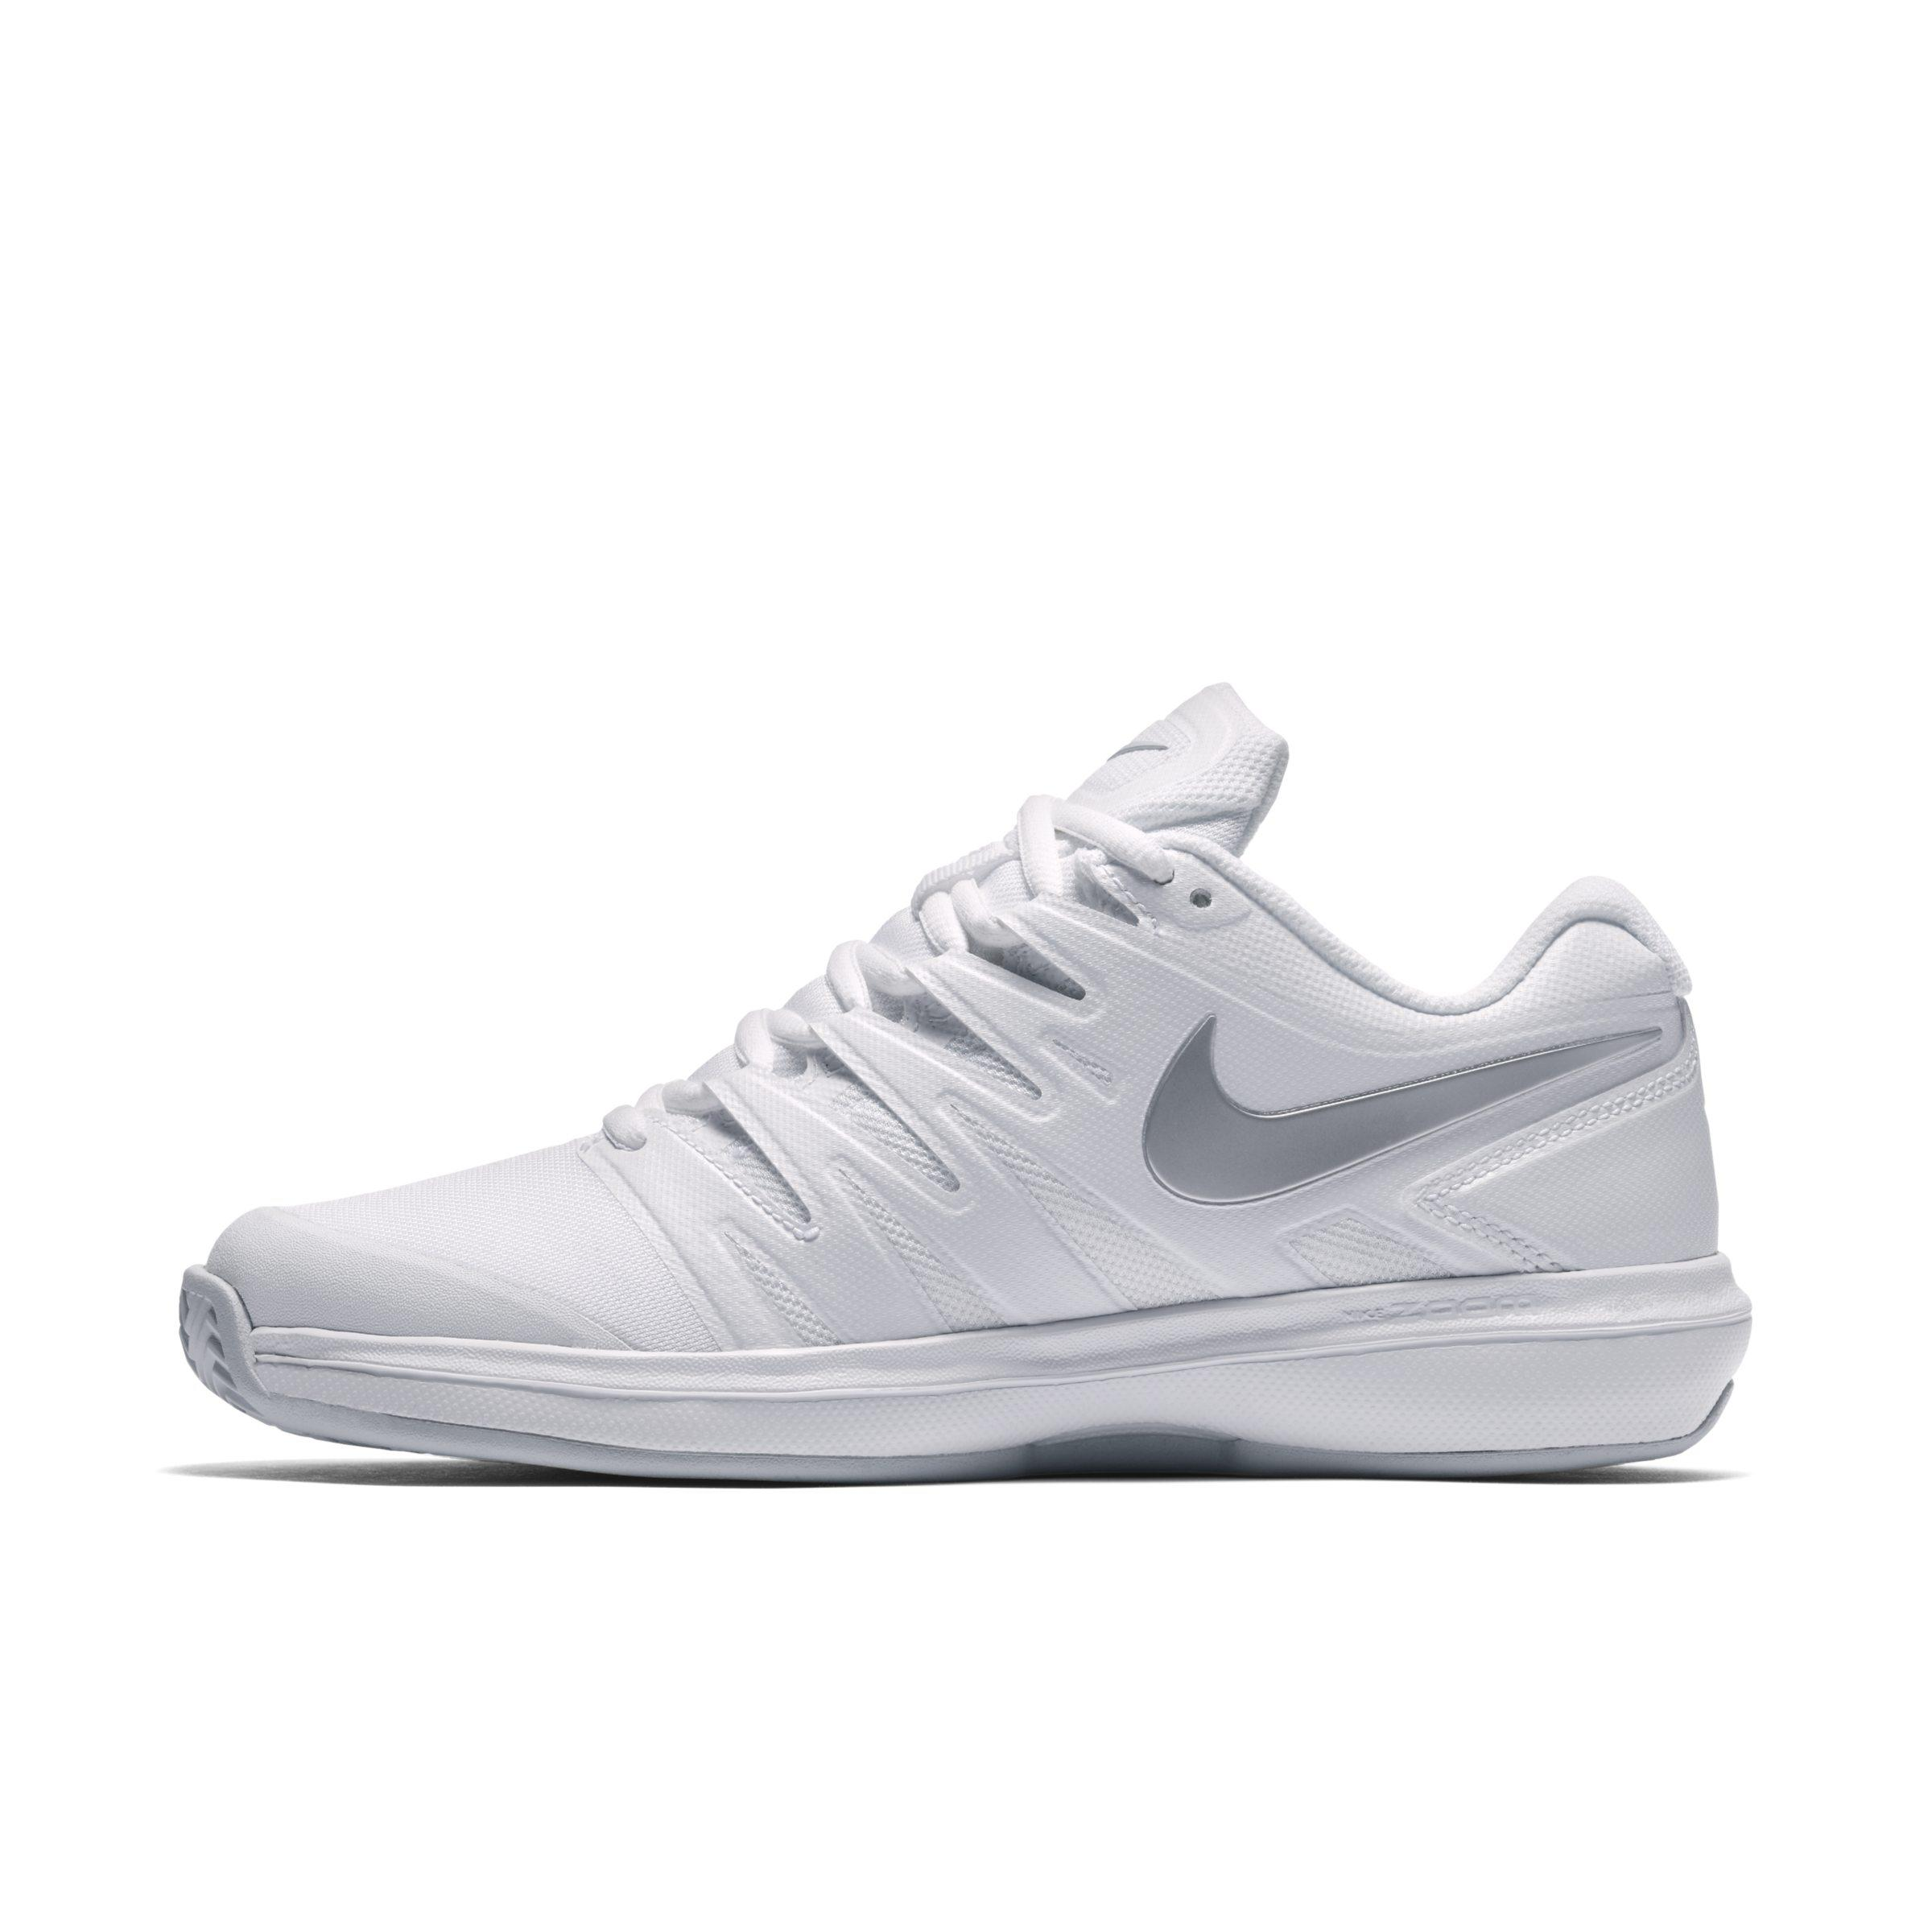 be55ff2129 Nike Air Zoom Prestige Clay Tennis Shoe in White - Lyst